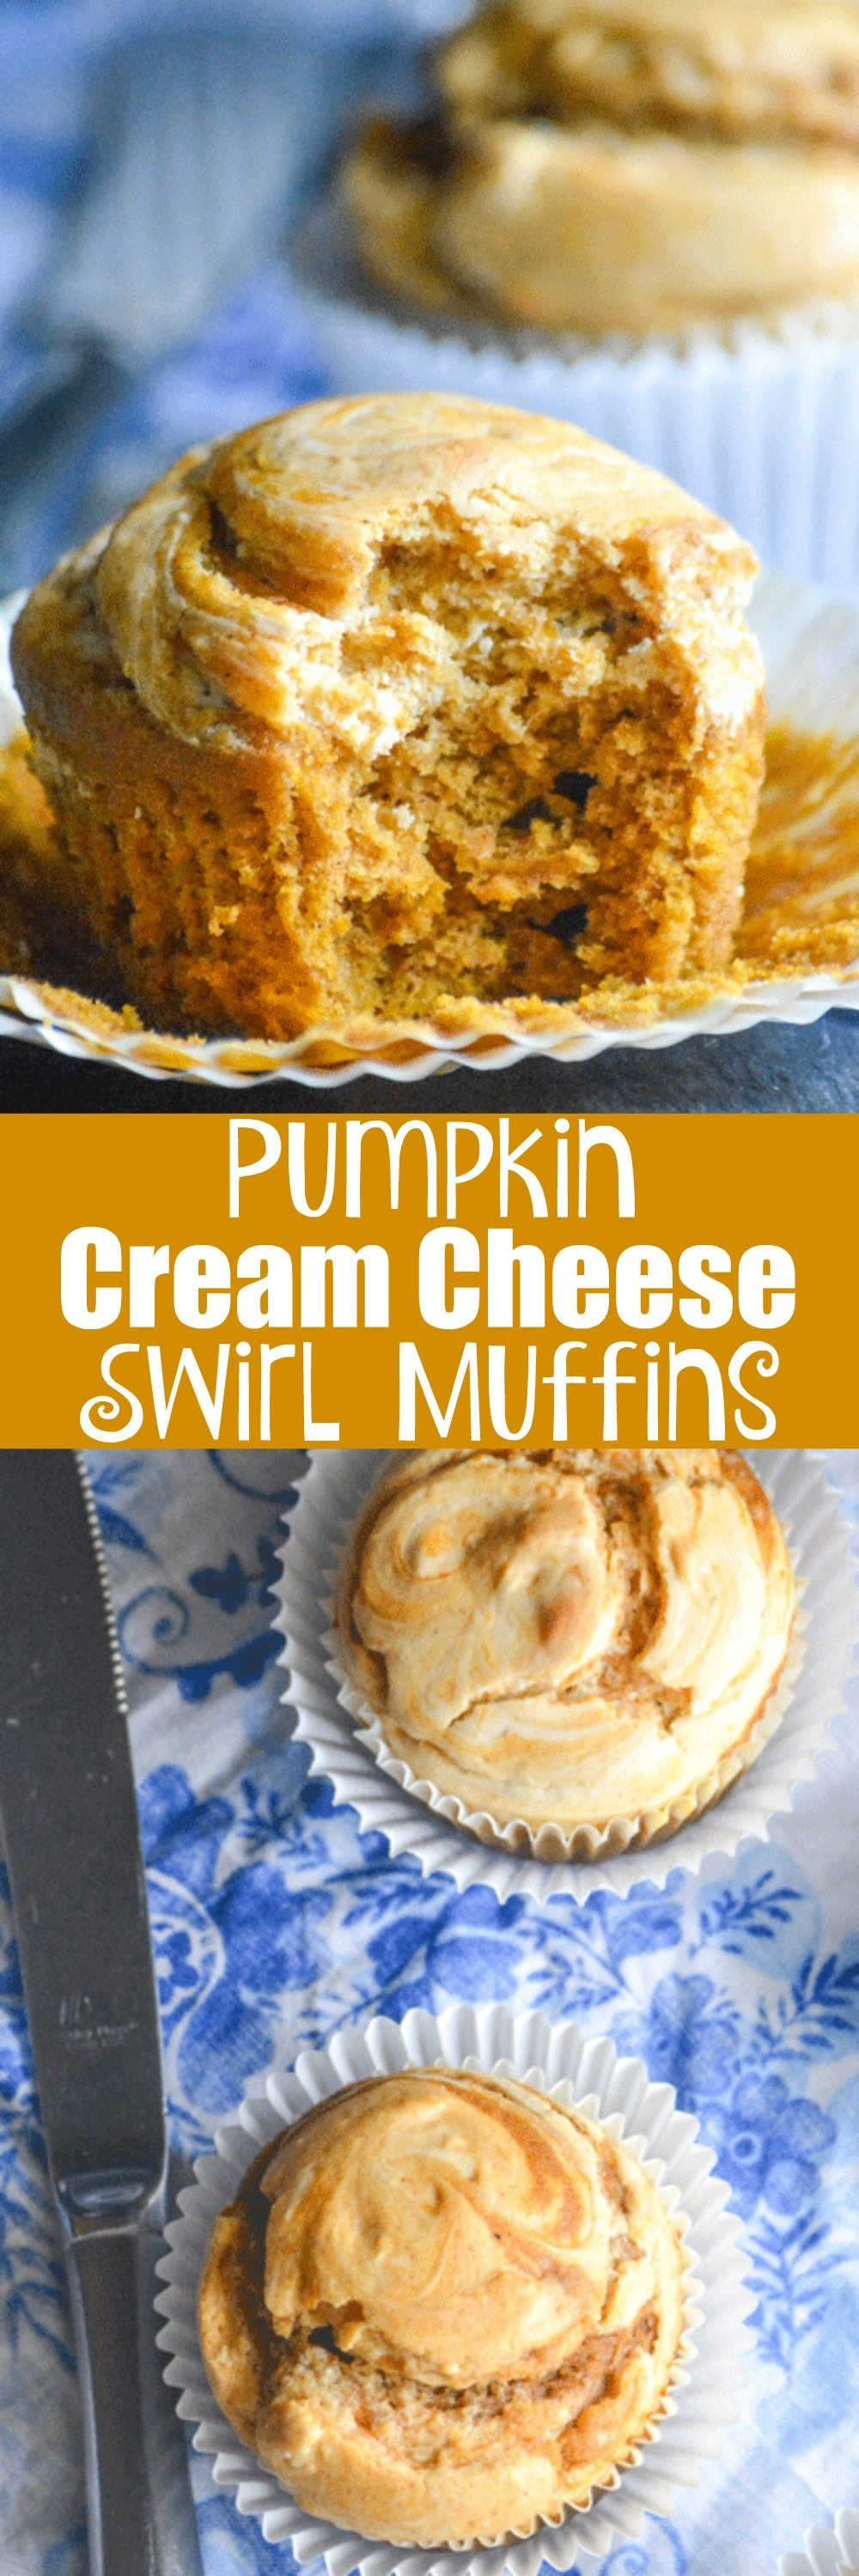 A batch of these Pumpkin Cream Cheese Swirl Muffins are the ideal way to usher in Fall and celebrate it's unique flavors. One bite, and I know you'll agree. Breakfast, snack, or dessert-- you'll fall in love with these sweet cake-like confections.